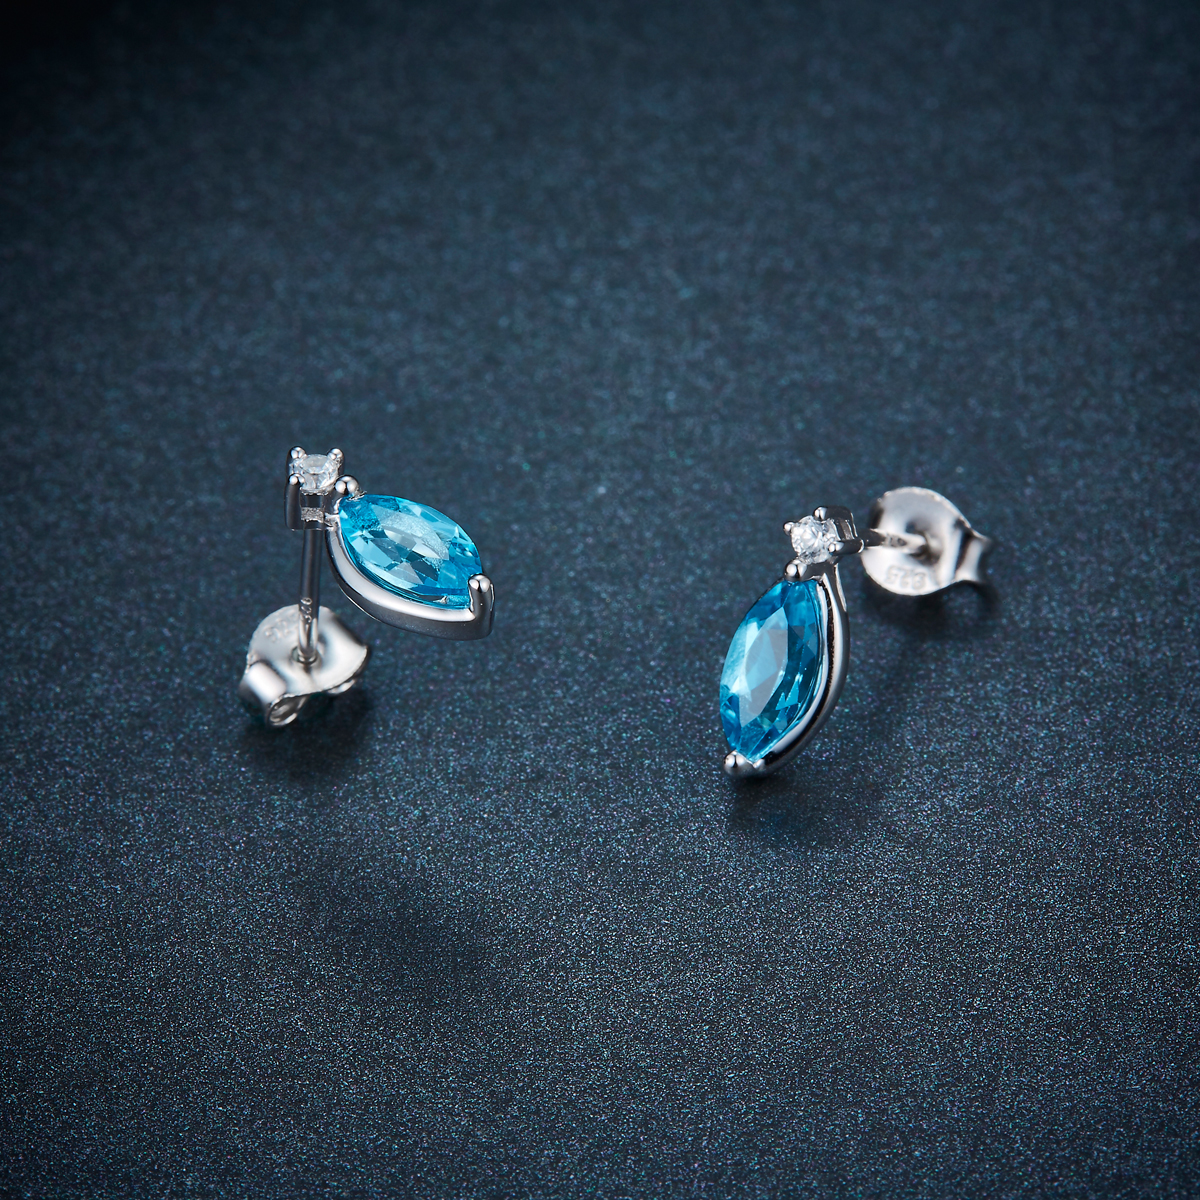 Hutang Marquise cut 8x4mm Swiss Blue Topaz Stud Earrings Solid 925 Sterling Silver Gemstone Fine Jewelry Women Girl Gift jewelrypalace halo 2 6ct swiss blue topaz stud earrings 925 sterling silver fine jewelry new earrings for women party gift